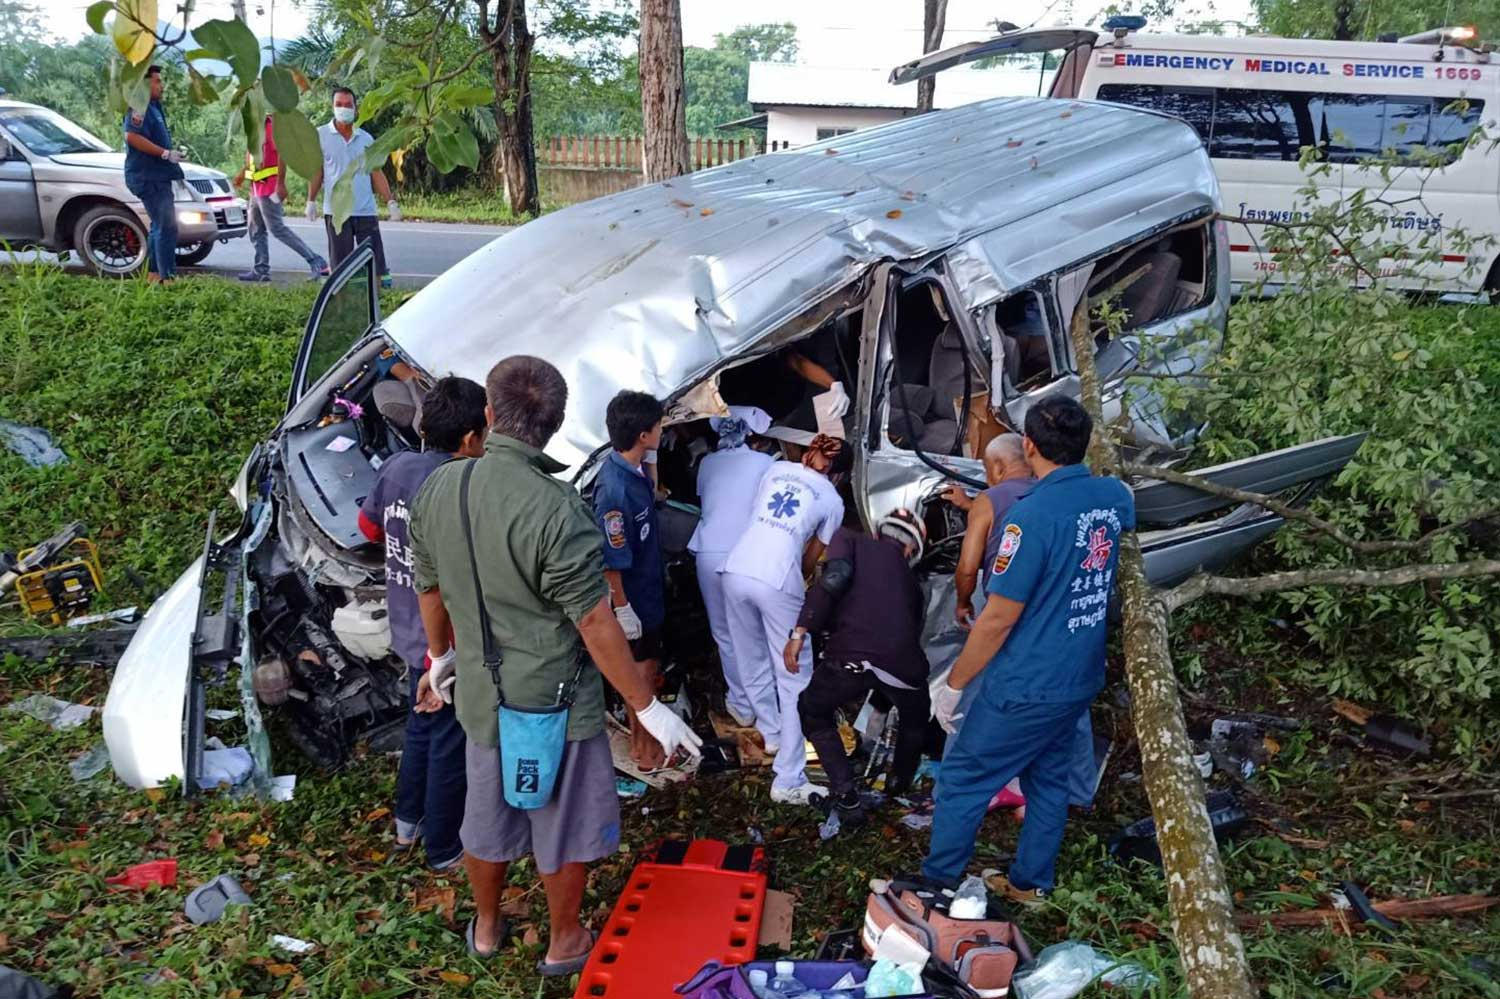 Rescue workers try to retrieve injured people from the wreckage of a van after it plunged into a ditch dividing the road in Kanchanadit district, Surat Thani on Tuesday morning. One woman was killed and 10 others injured. (Photo by Kusolsattha Surat Thani rescue foundation)